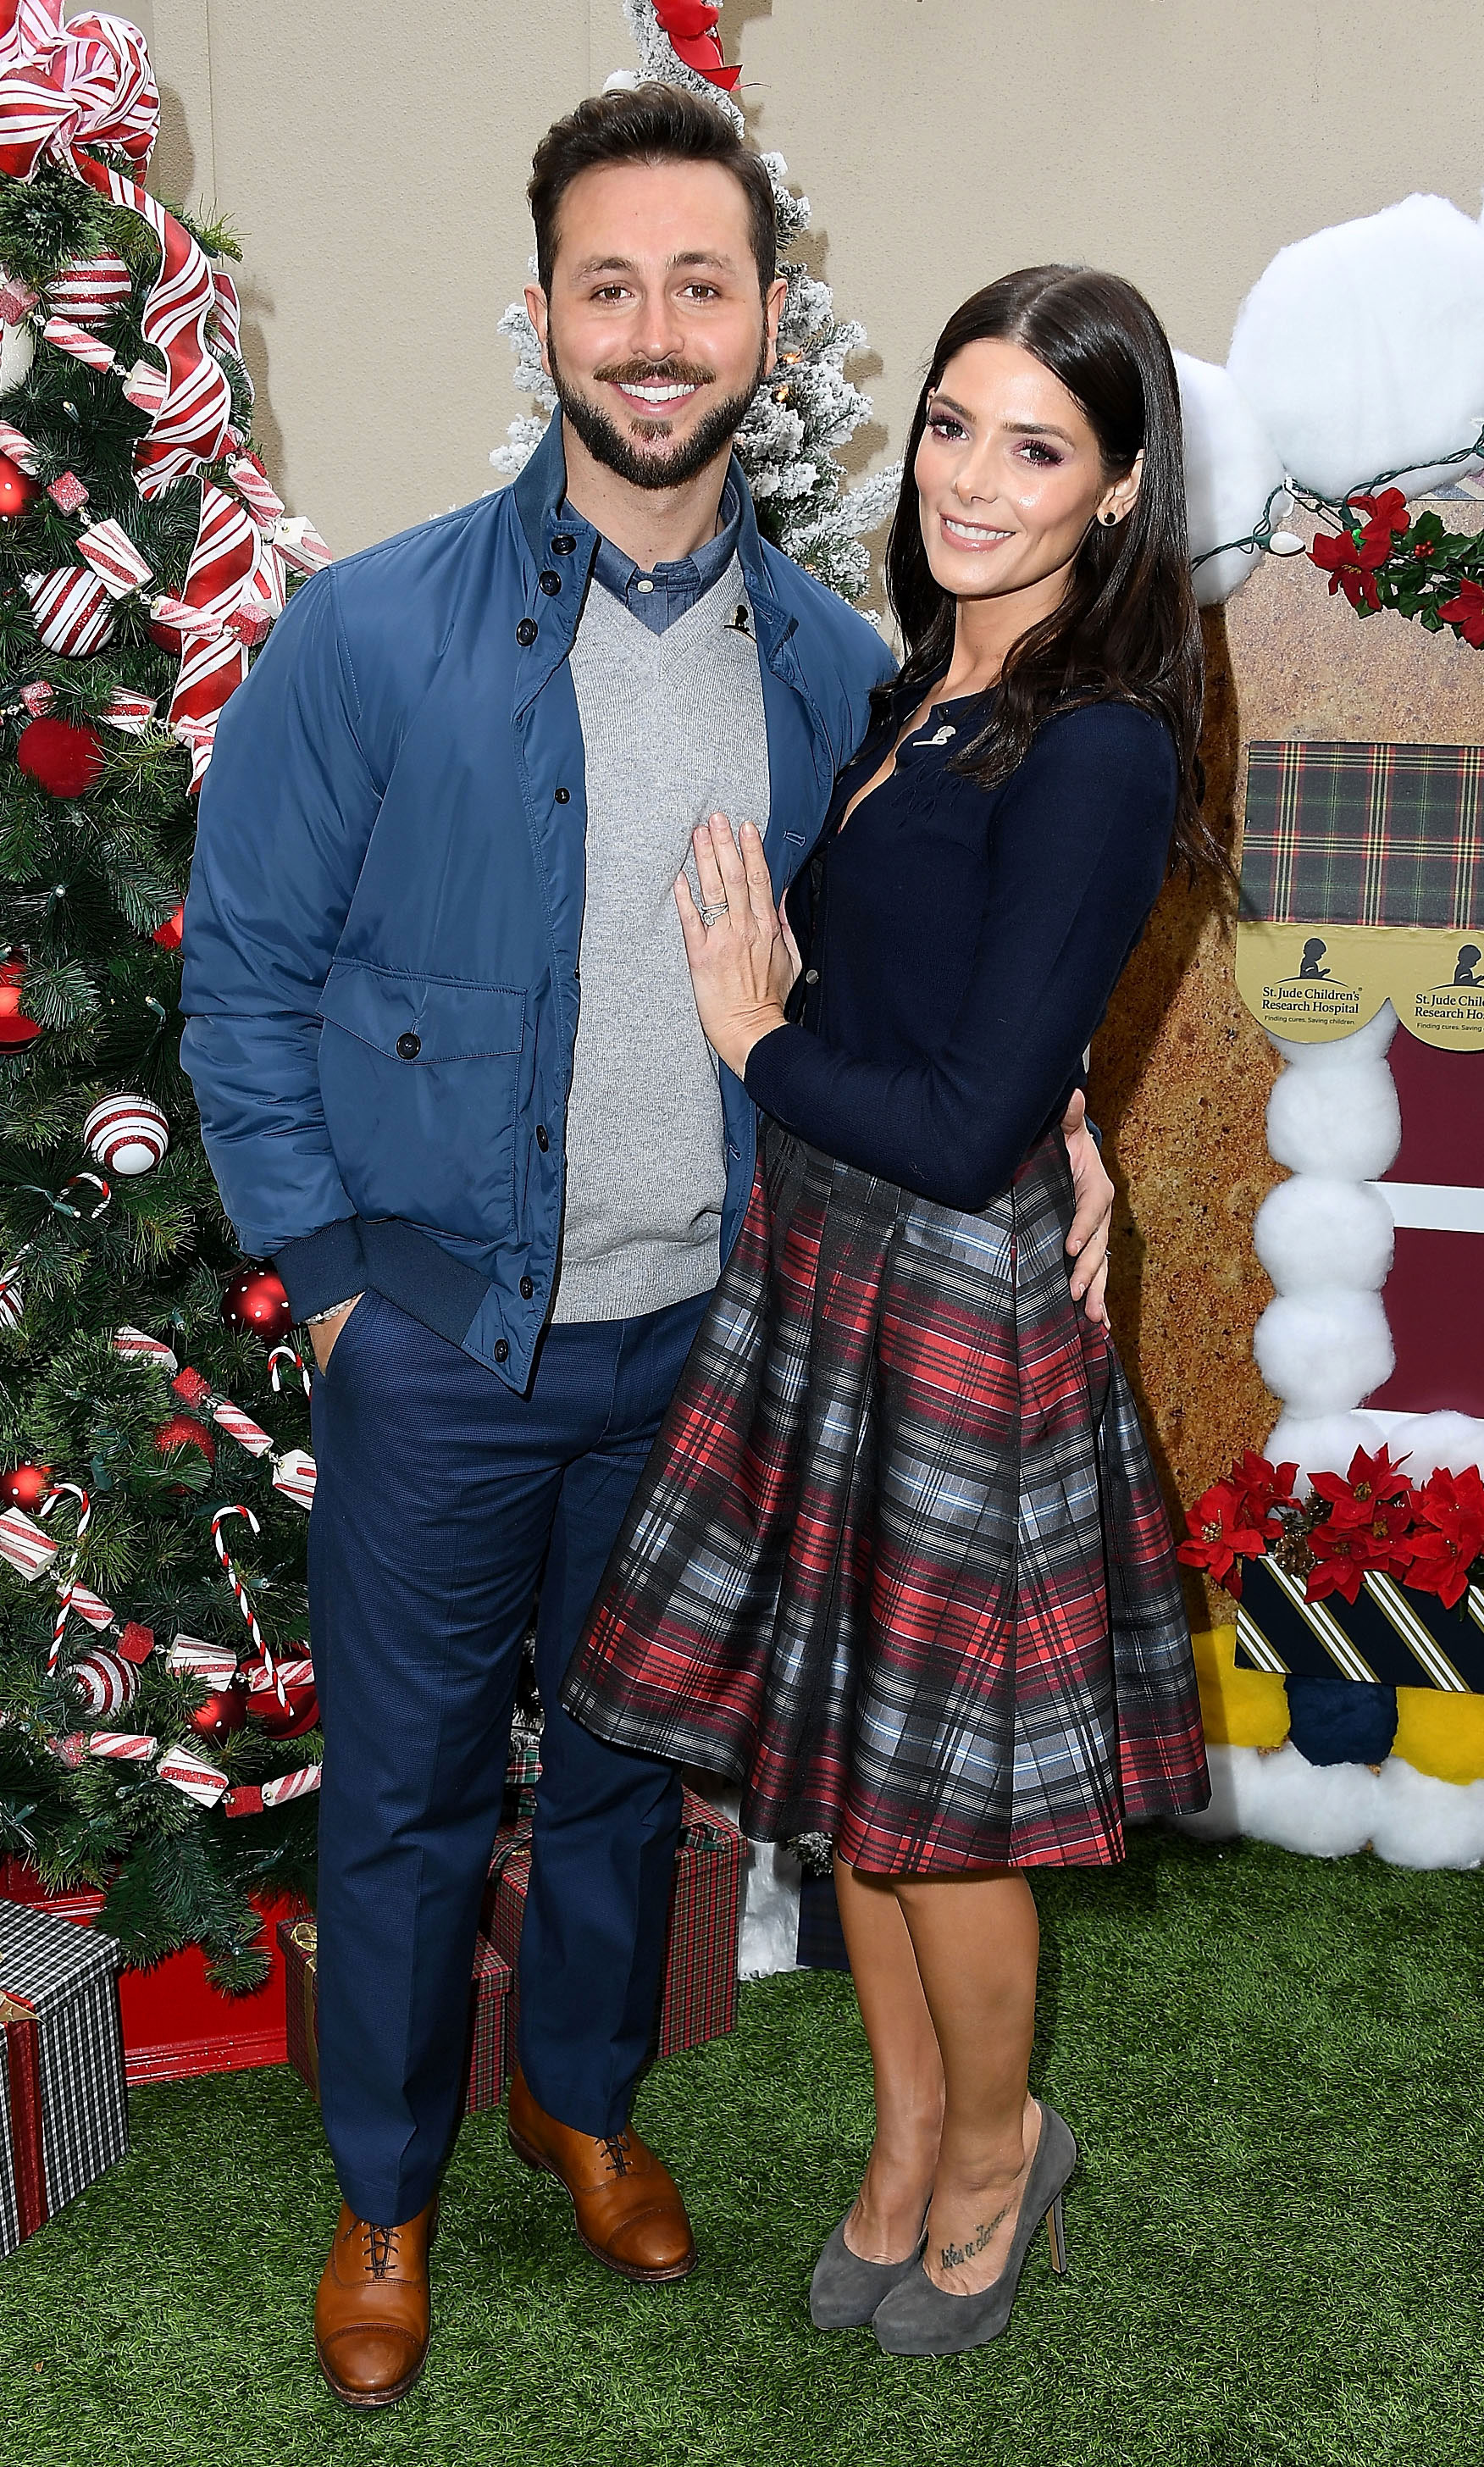 Ashley Greene Gushes About Married Life: 'It's Been Really Wonderful' - Paul Khoury and Ashley Greene at The Brooks Brothers Hosts Annual Holiday Celebration In Los Angeles To Benefit St. Jude on December 9, 2018 in Beverly Hills, California.